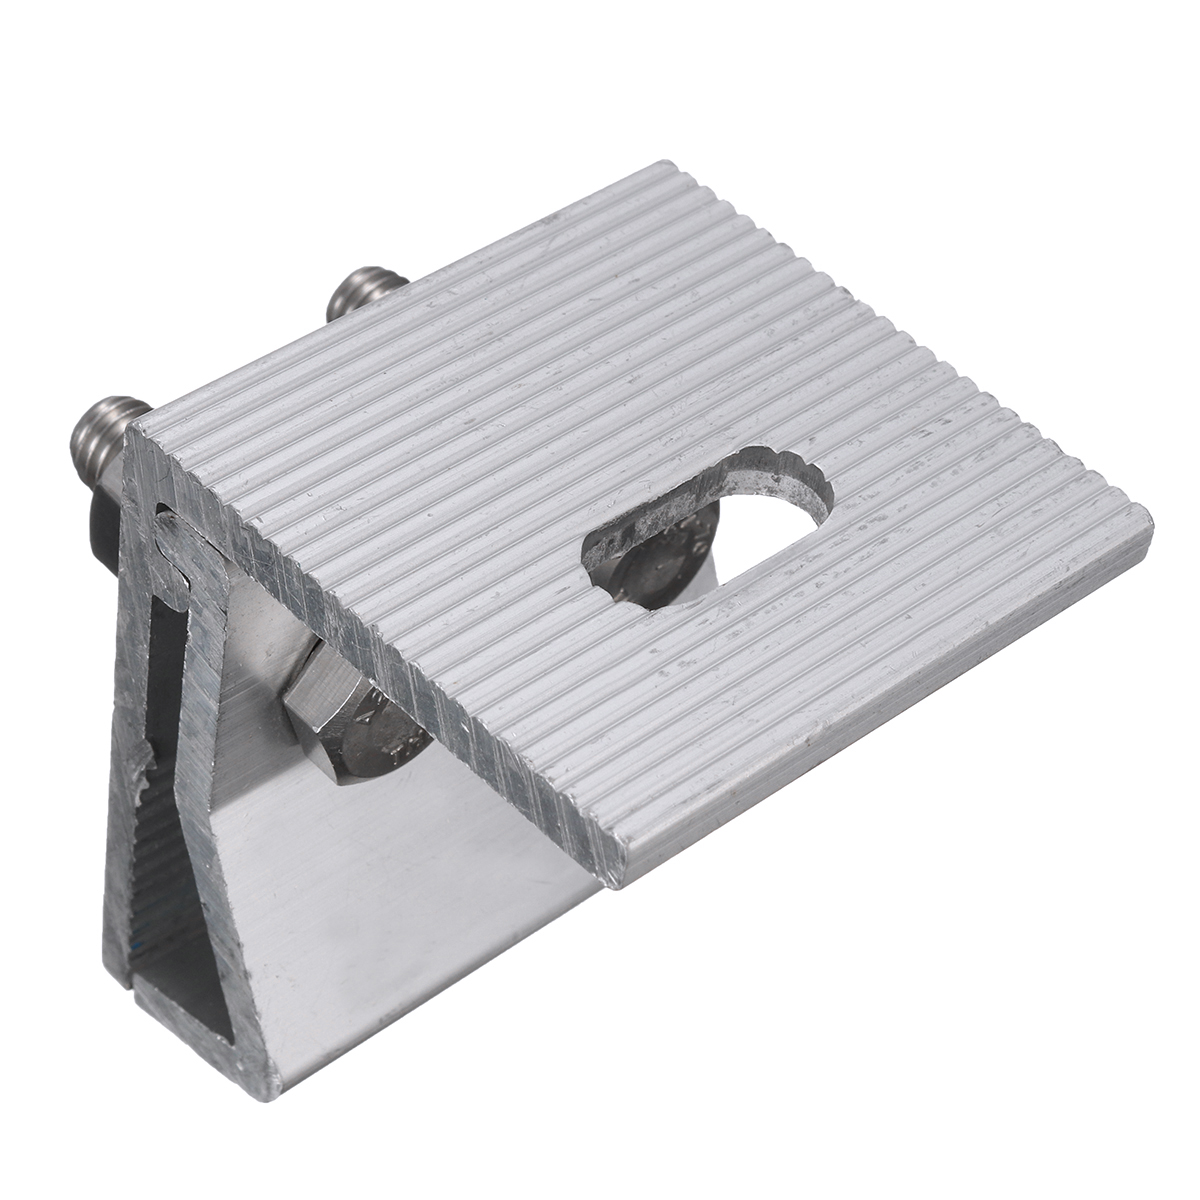 Solar Panel Mounting Bracket Photovoltaic Panel Mounting Bracket For Roof Boat